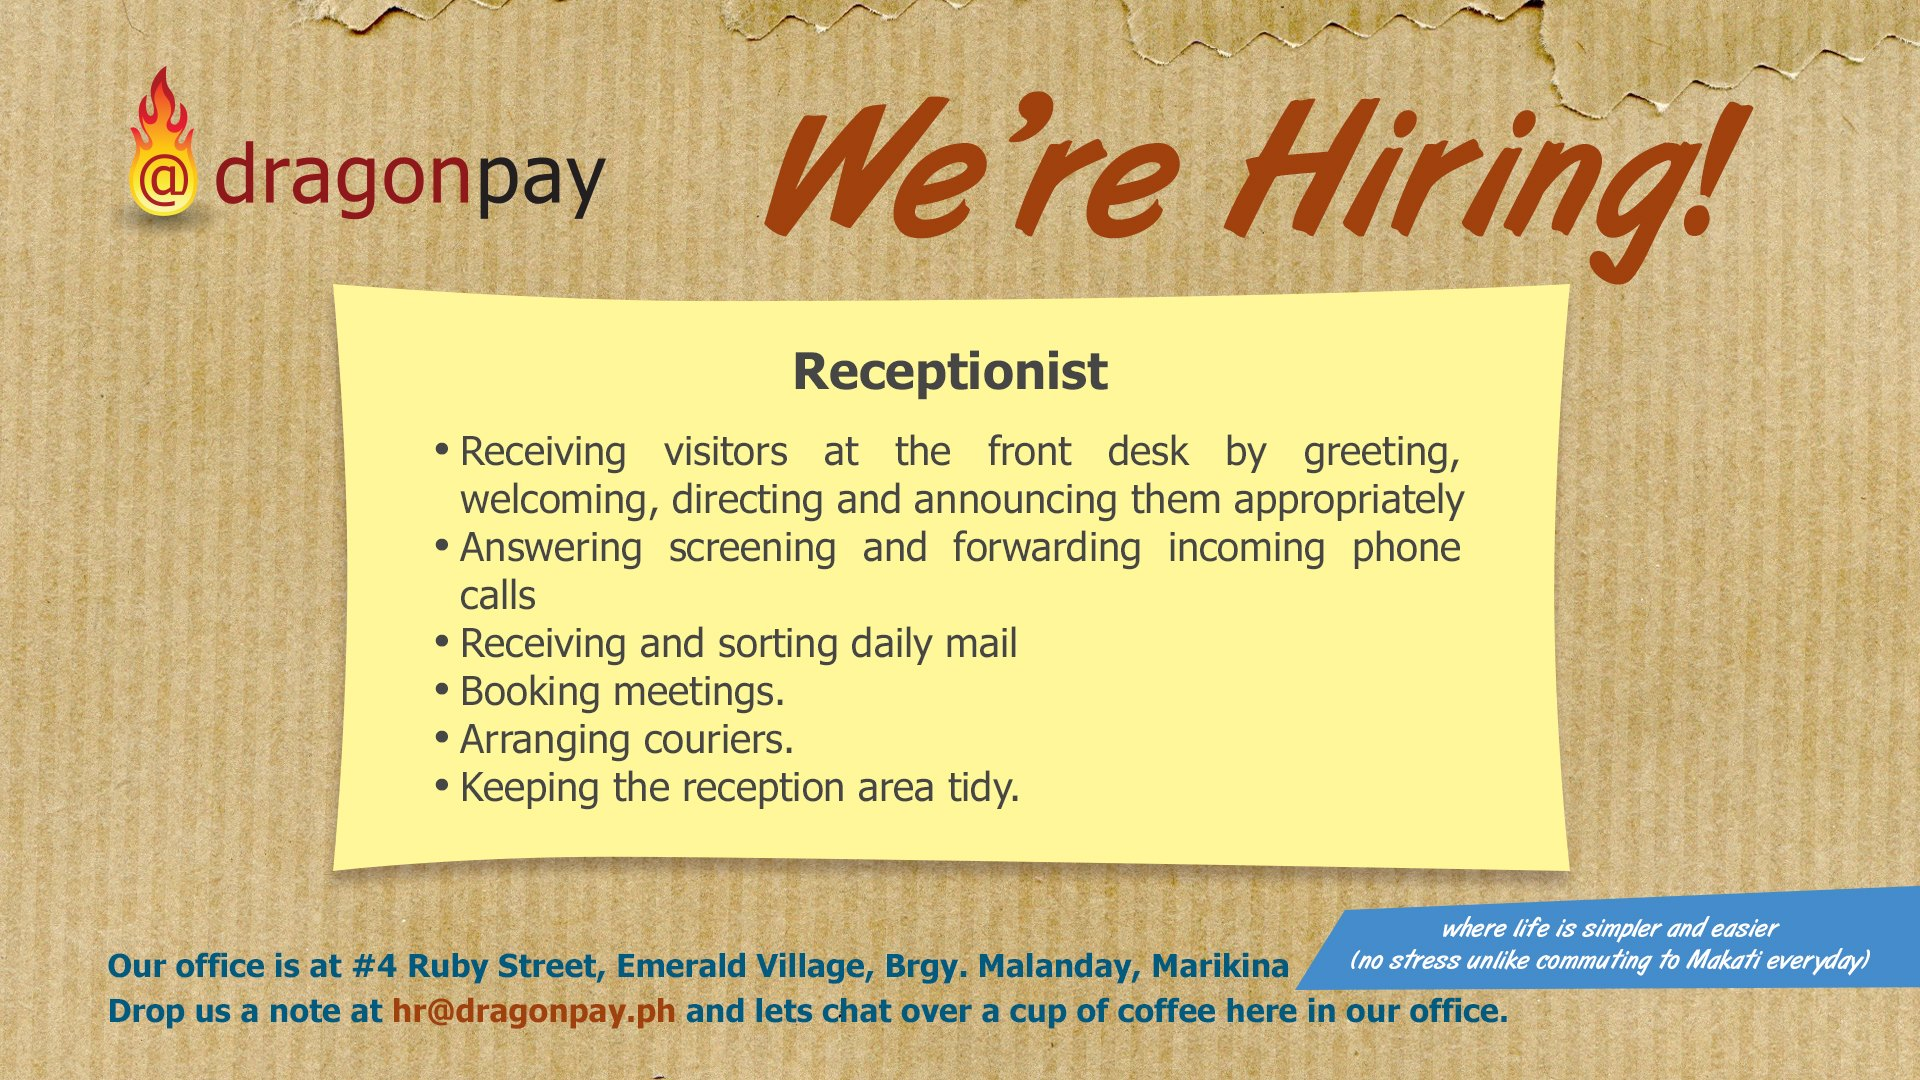 Receptionist From Dragonpay